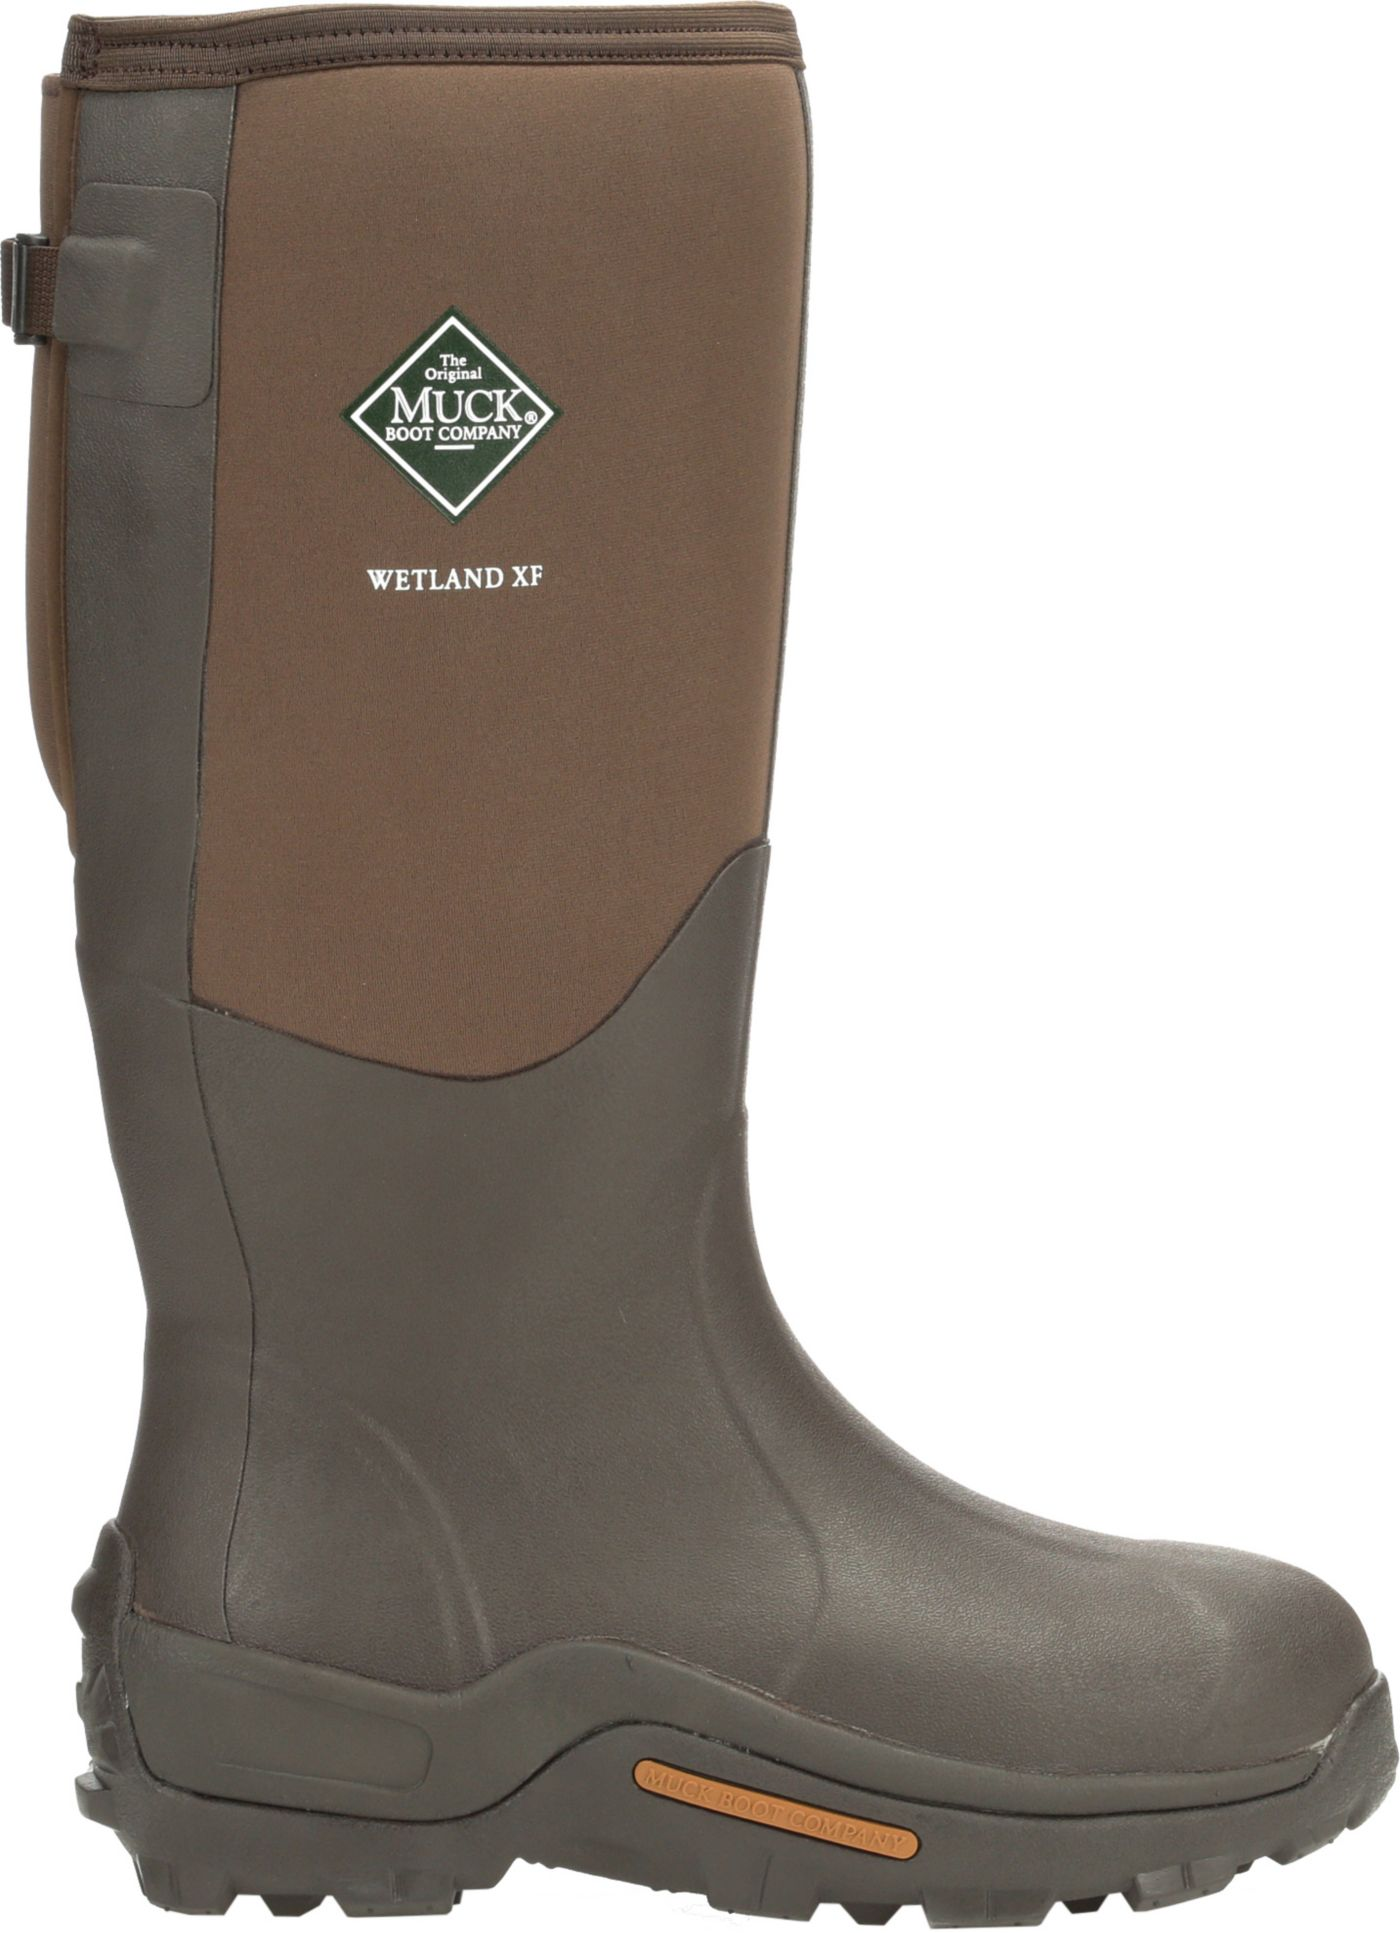 Muck Boots Men's Wetland Wide Calf Rubber Hunting Boots